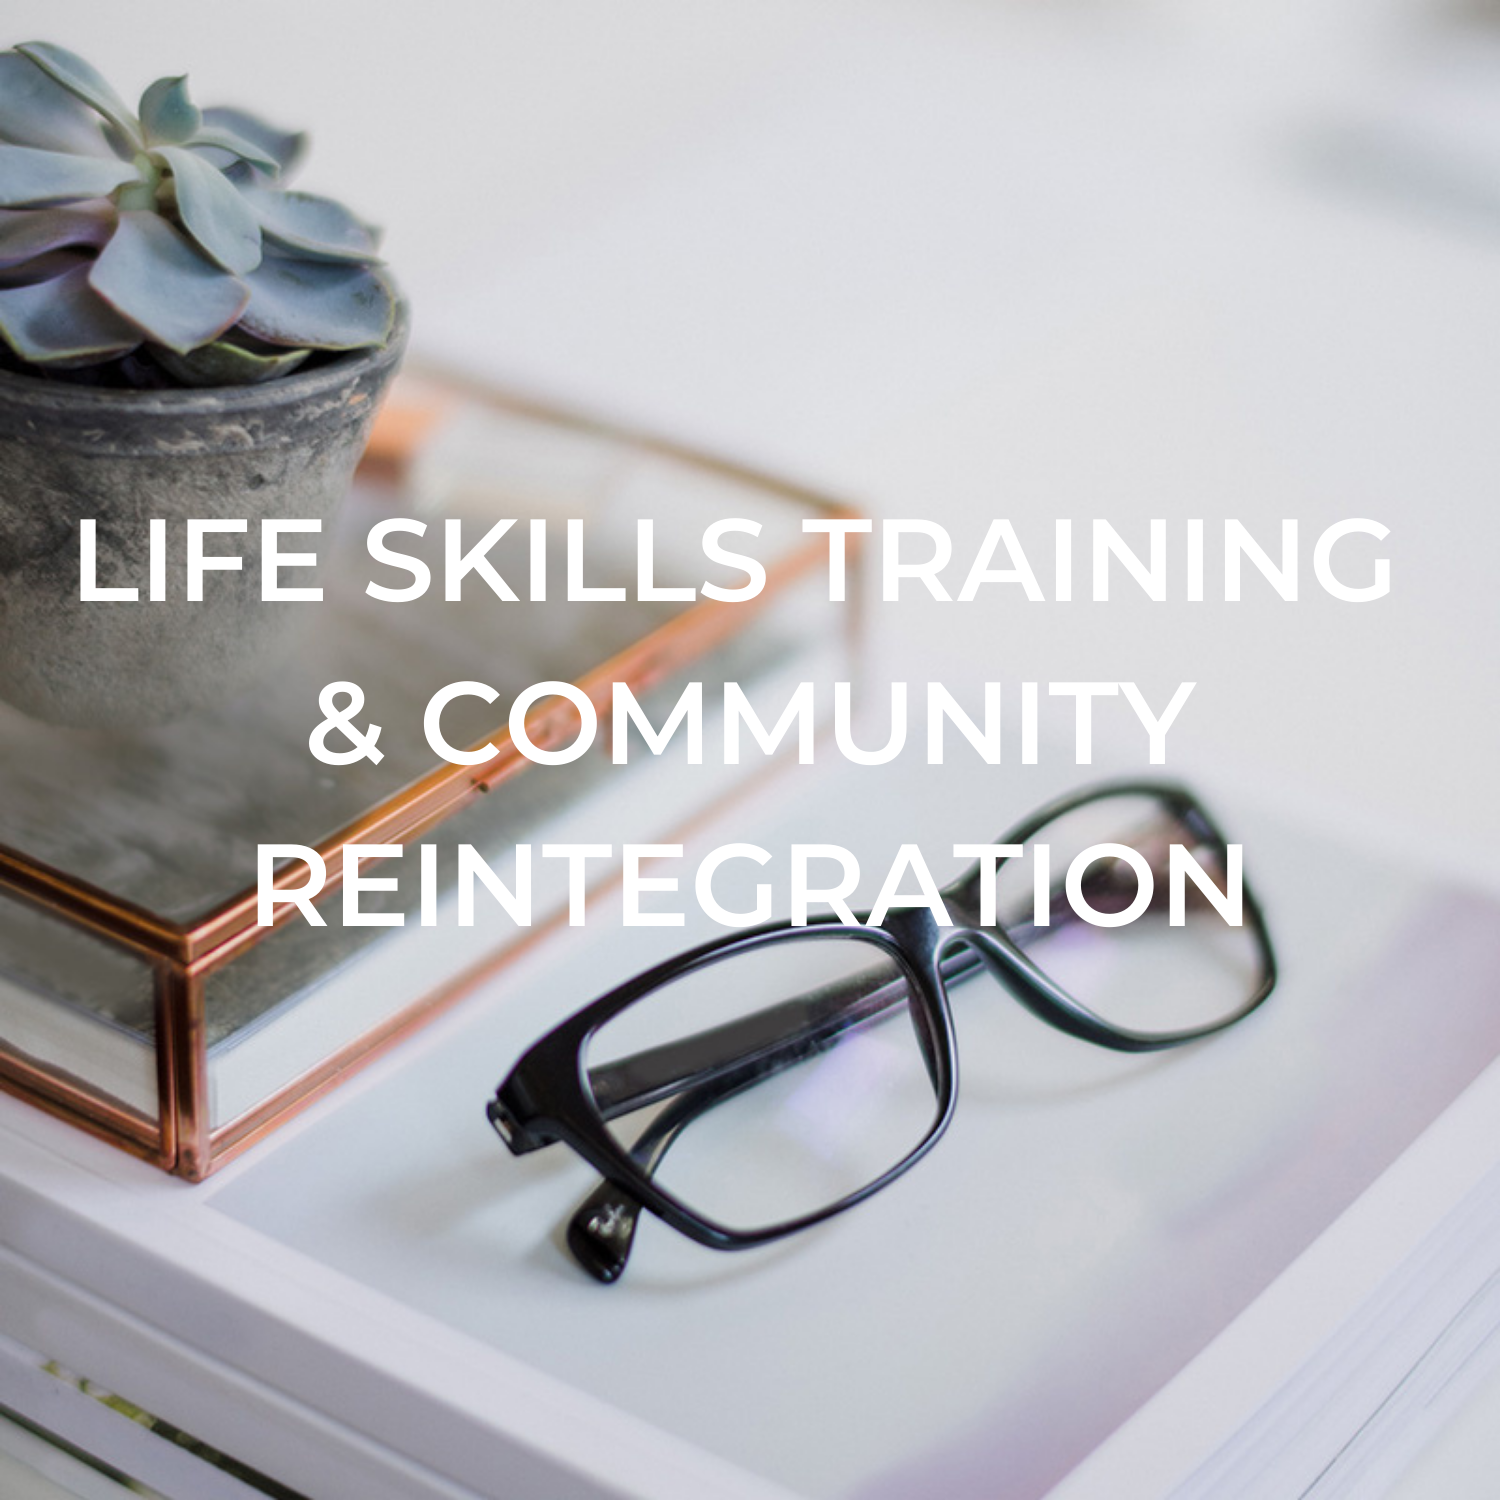 Life skills training and community reintegration